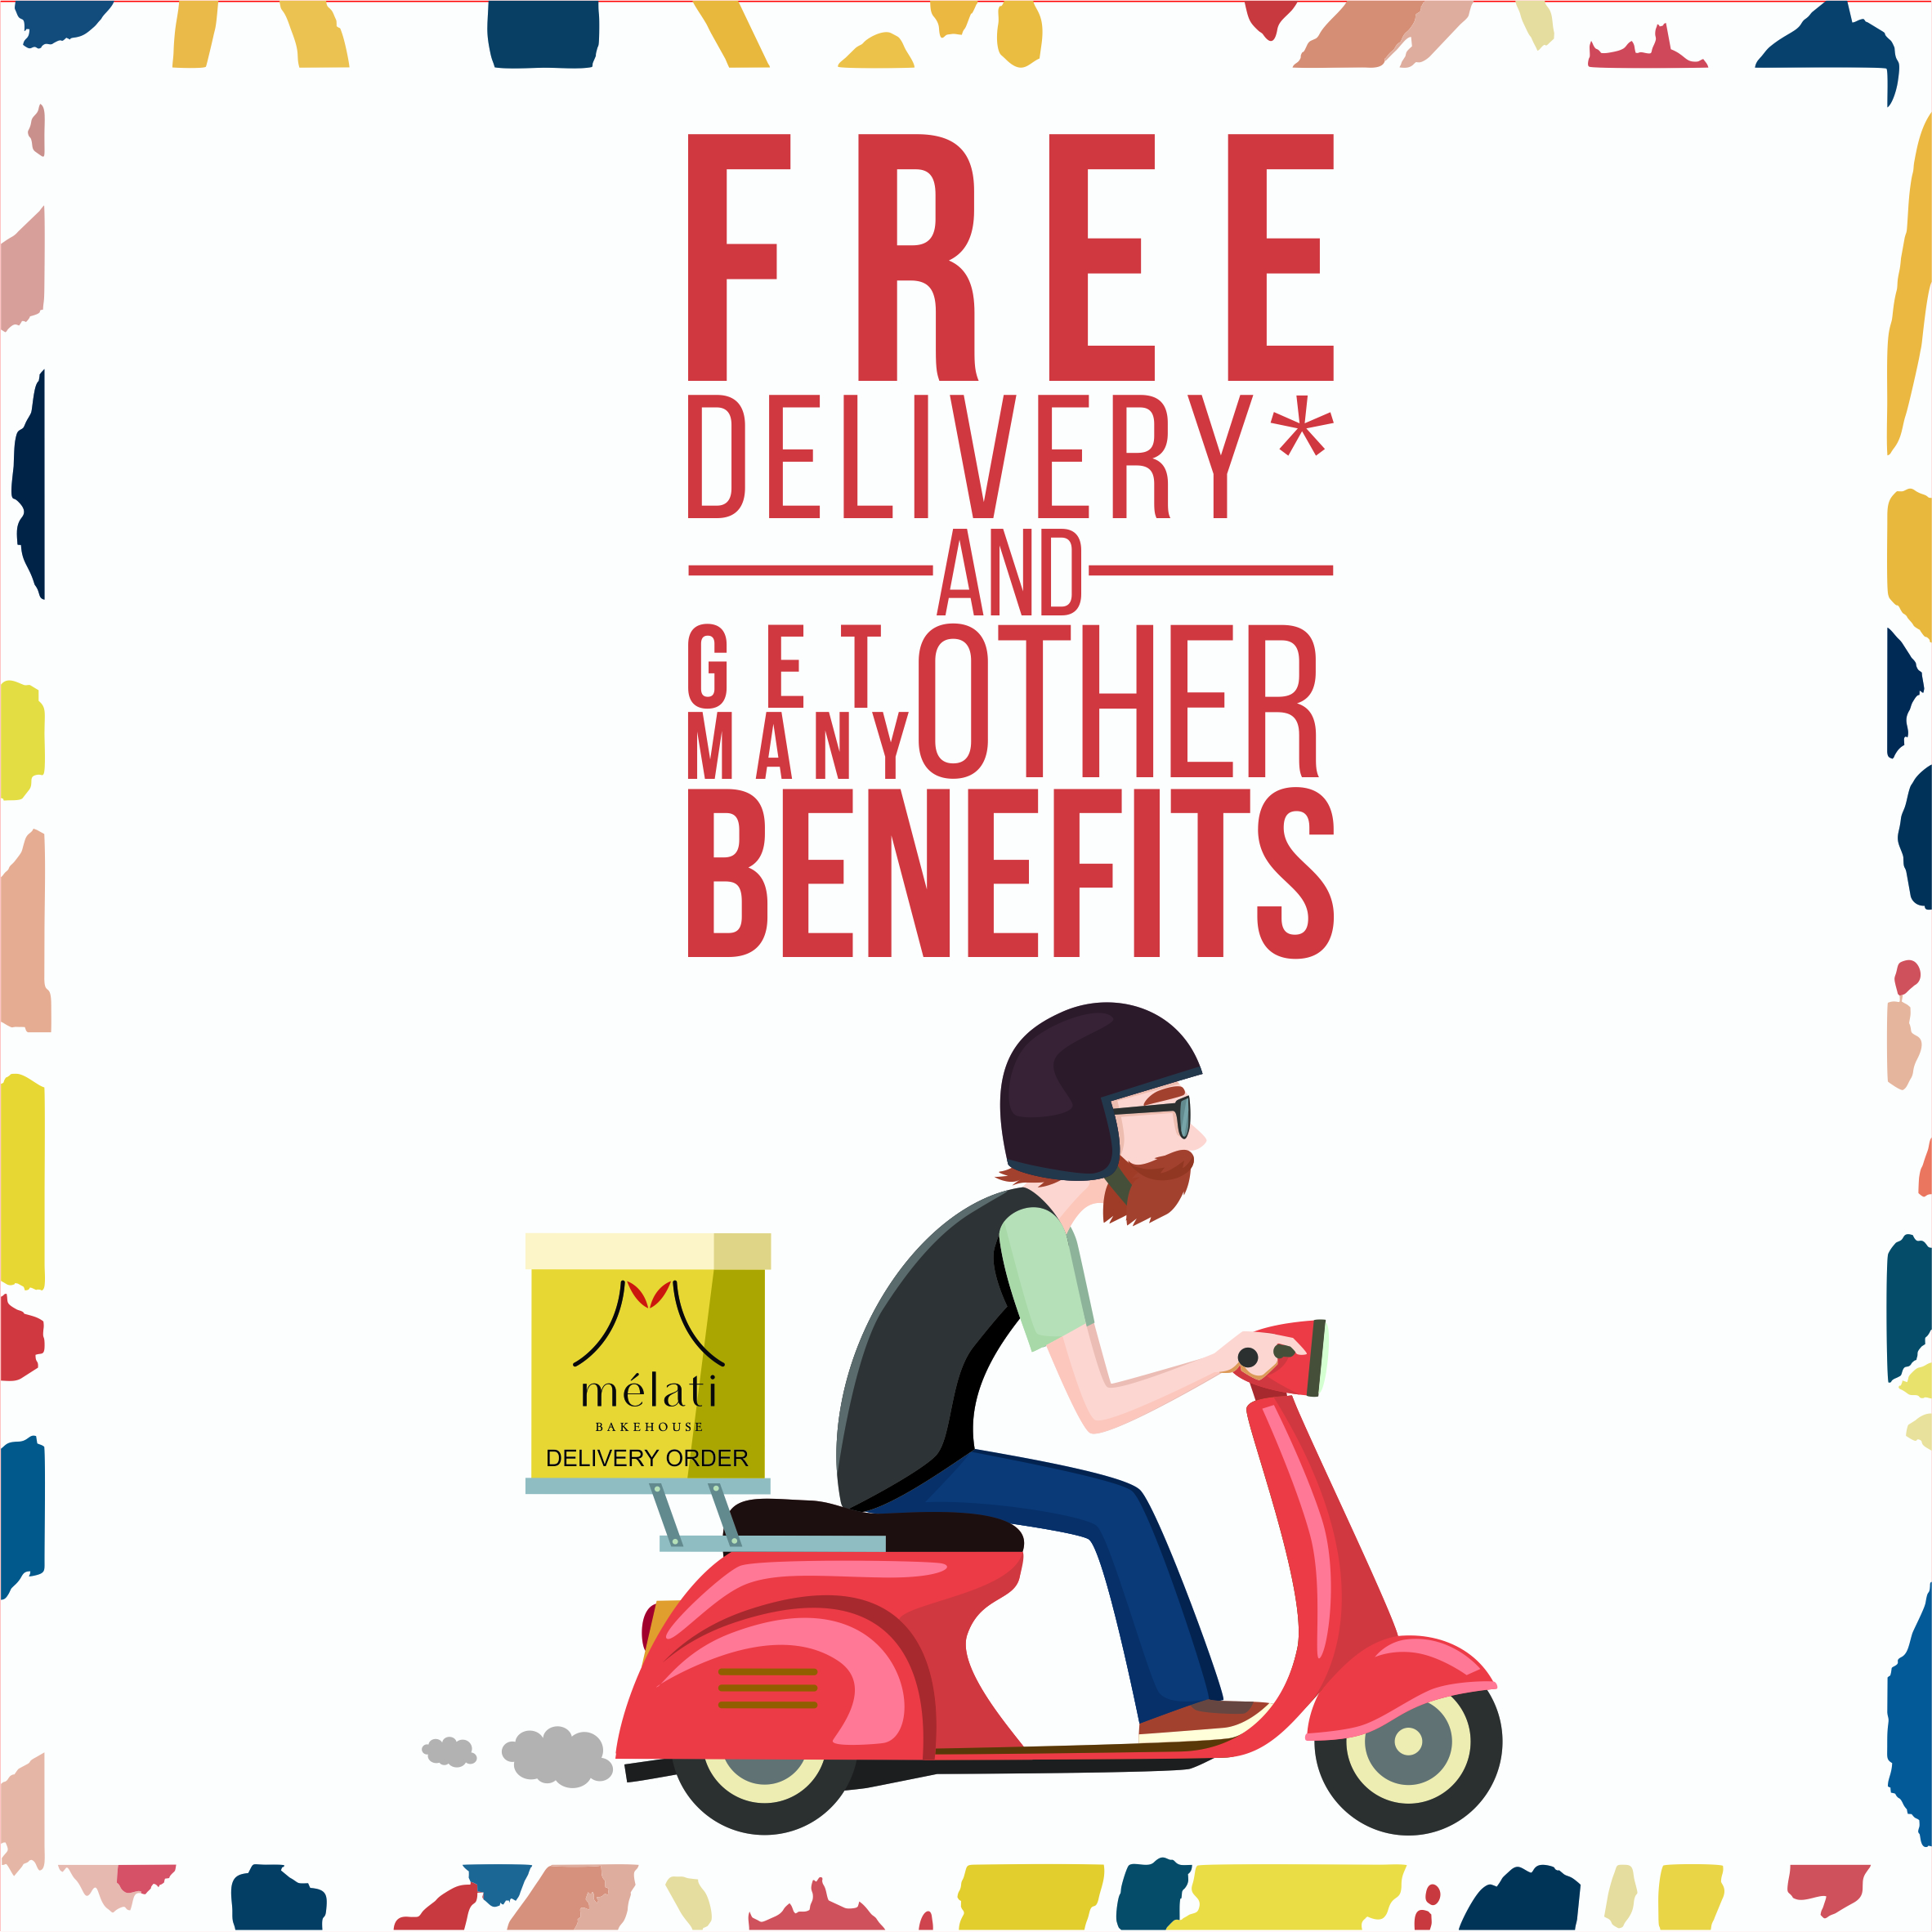 - SUpply OnlyDo you have a Coffee Shop, Cafe, or Restaurant currently seeking for bread and pastry supplier ?If so, look no further from us ! As Melati Bakehouse's wholesale customer, you will gain some of the many benefits below :- FREE Delivery- Competitive B2B (Business to Business) Prices- DISCOUNT up to 12% !- Minimum order are only 15 pieces and you can mix the flavours !So what are you waiting for ? Register in the form below and let us help you expand your menu !